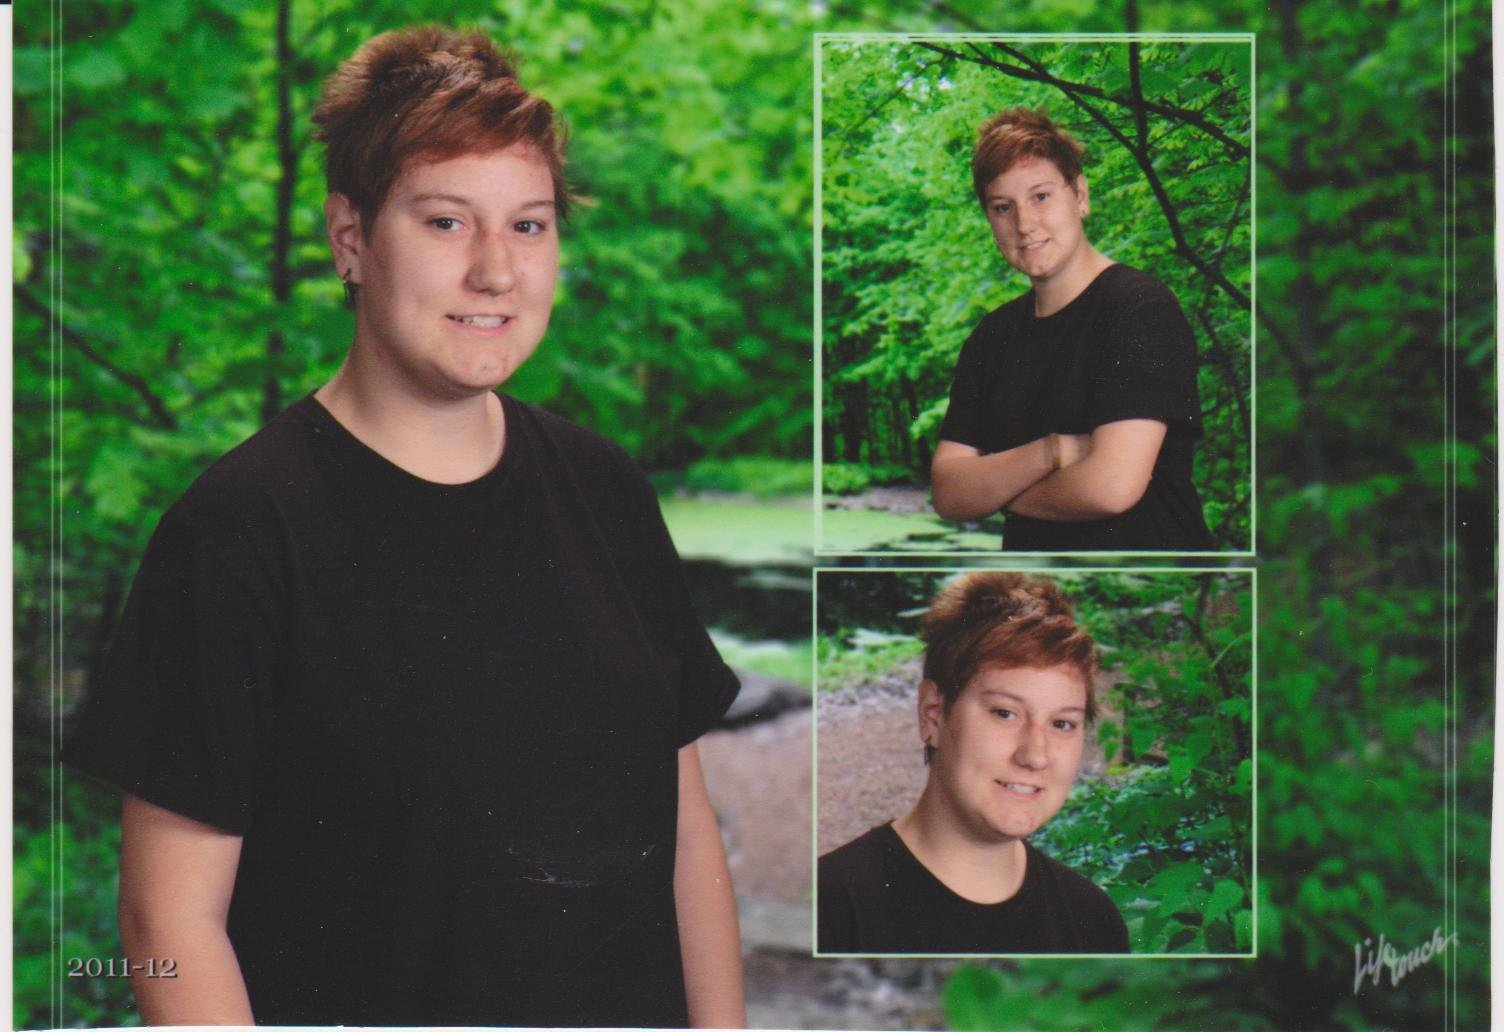 (Source: Chandler Police Department) Katie Stull is described as 5'9'' and 160 pounds with brown hair and brown eyes.